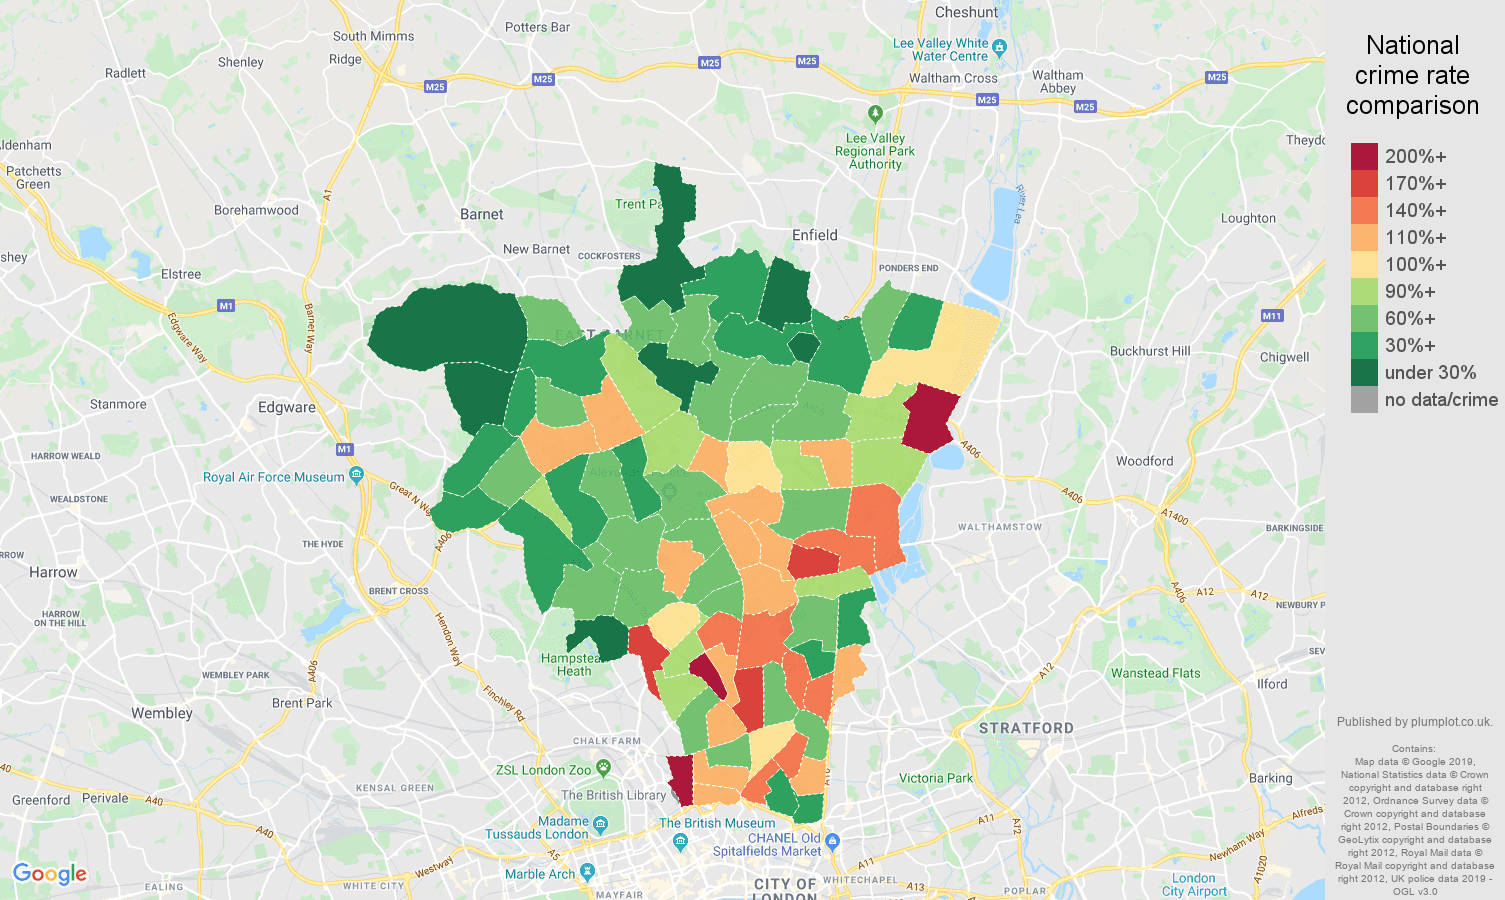 North London public order crime rate comparison map